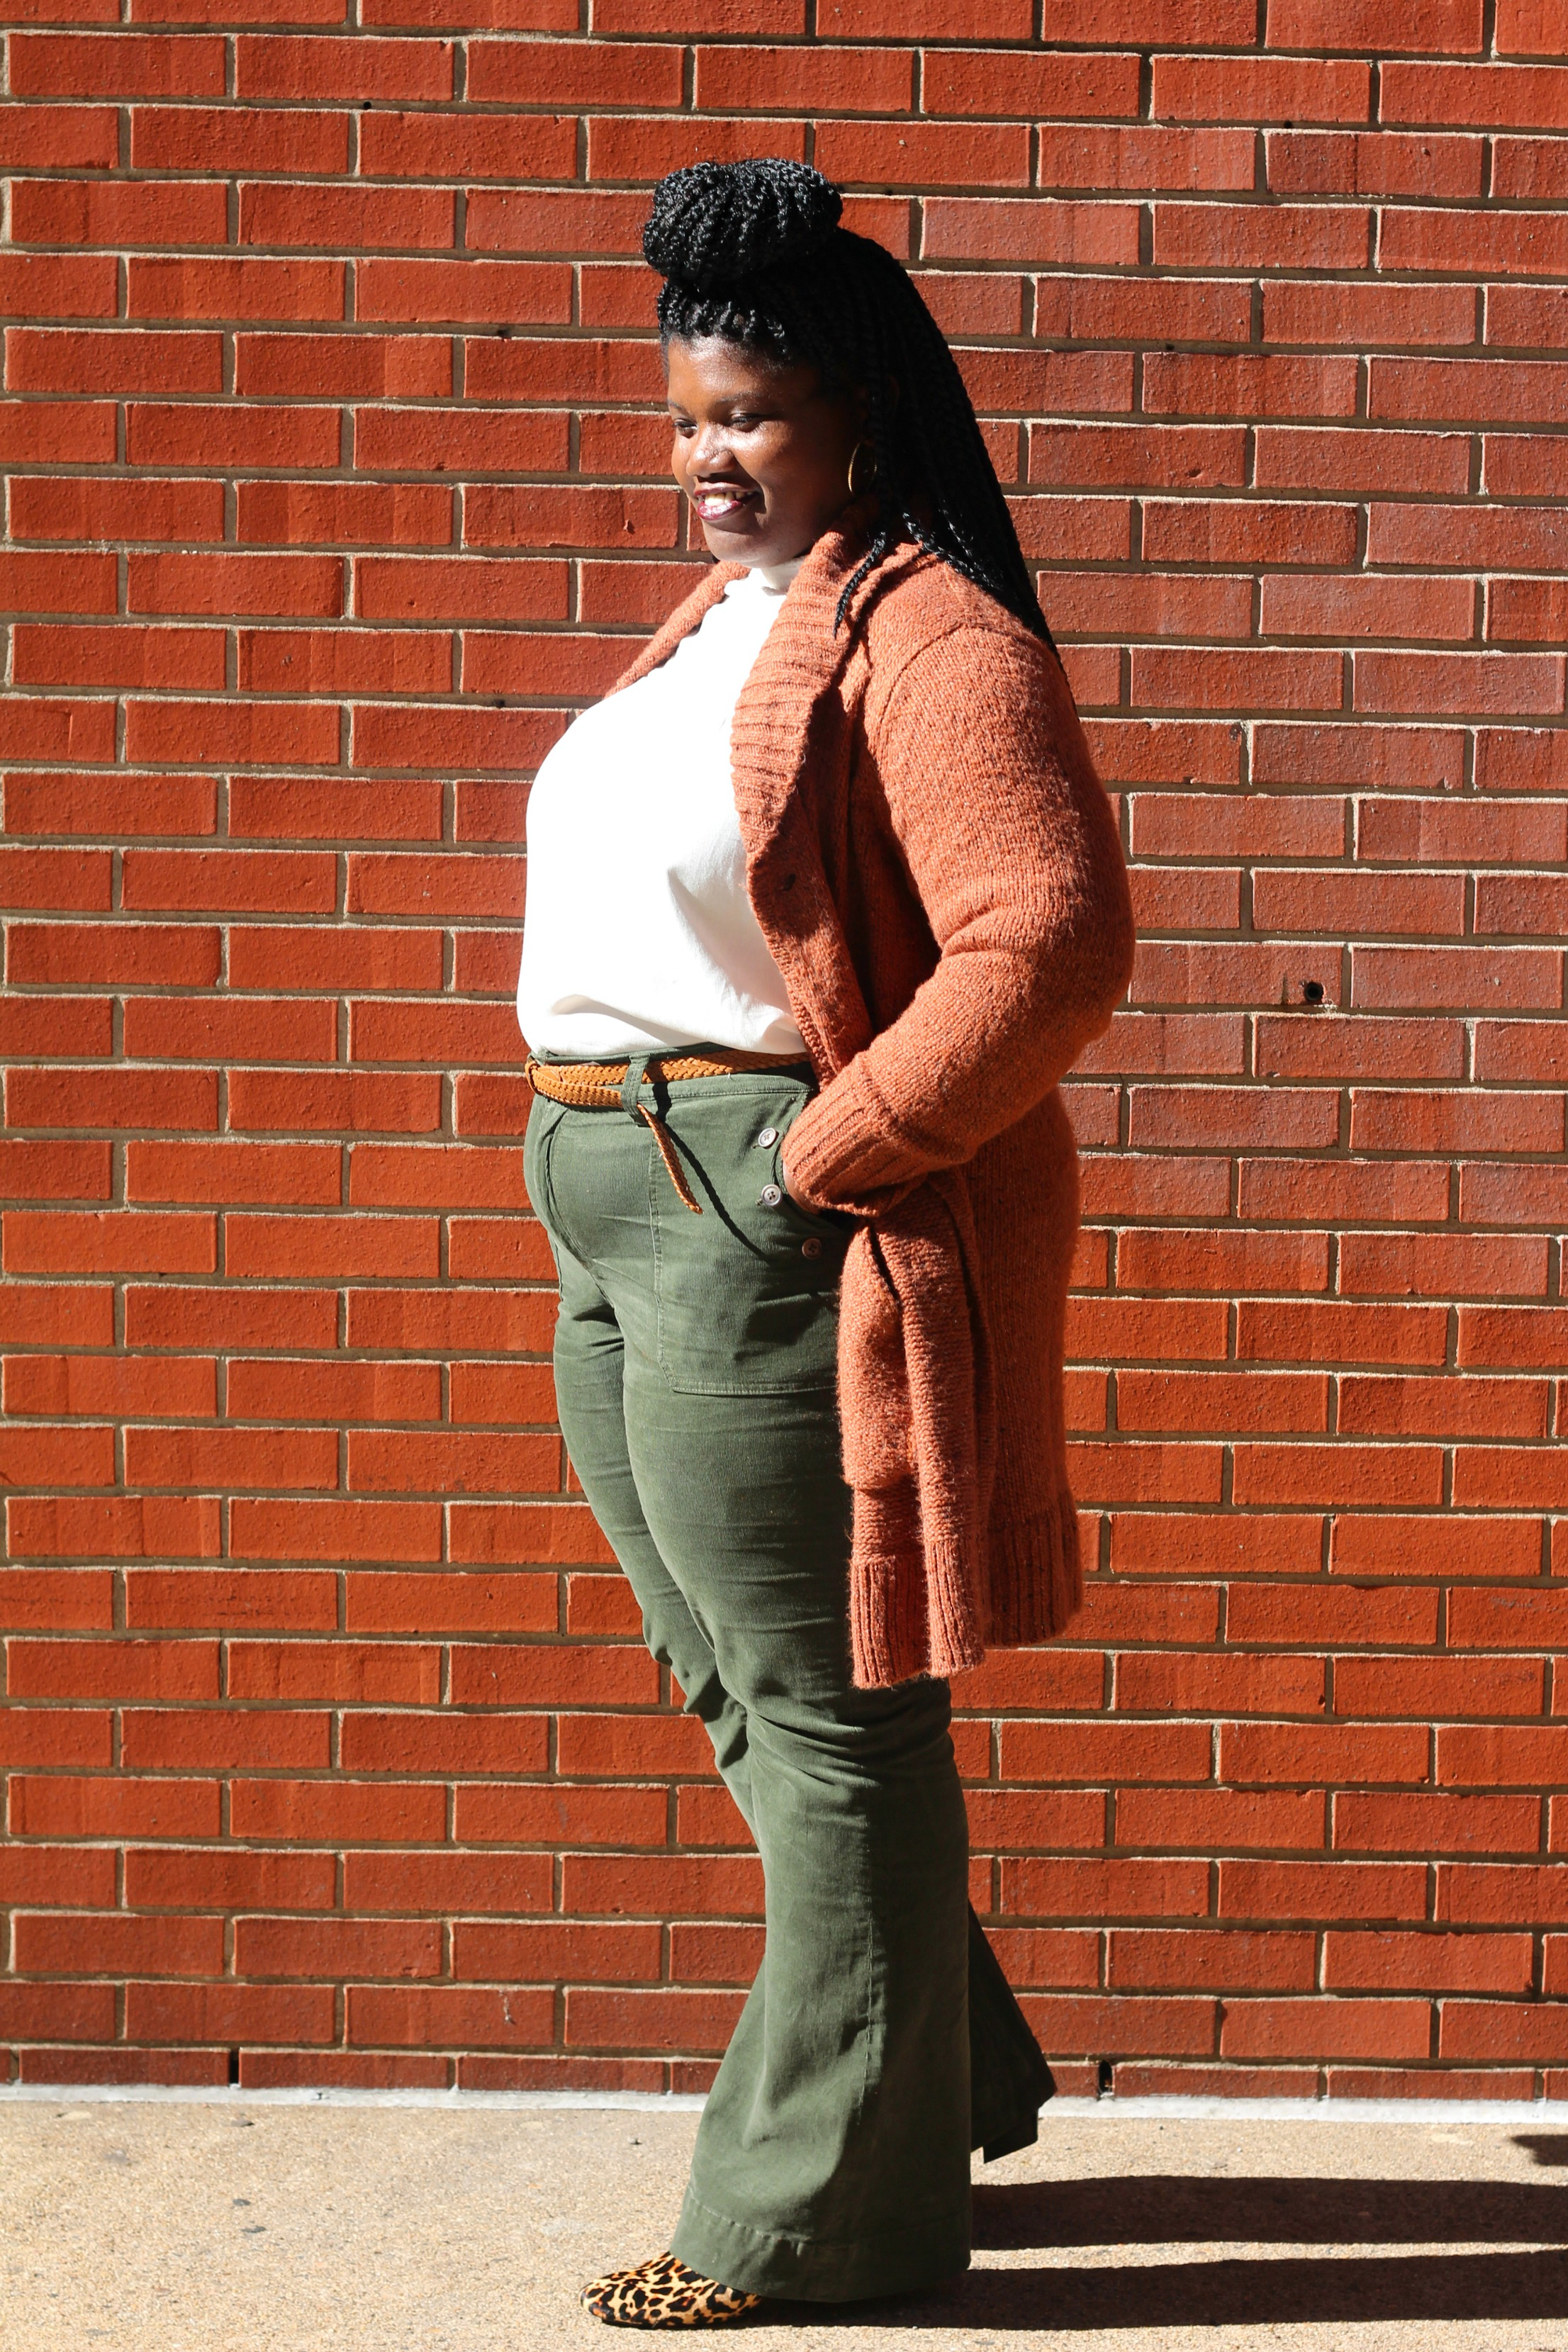 eda2e1e4c3b3d Sweater Obsessed – Grown and Curvy Woman